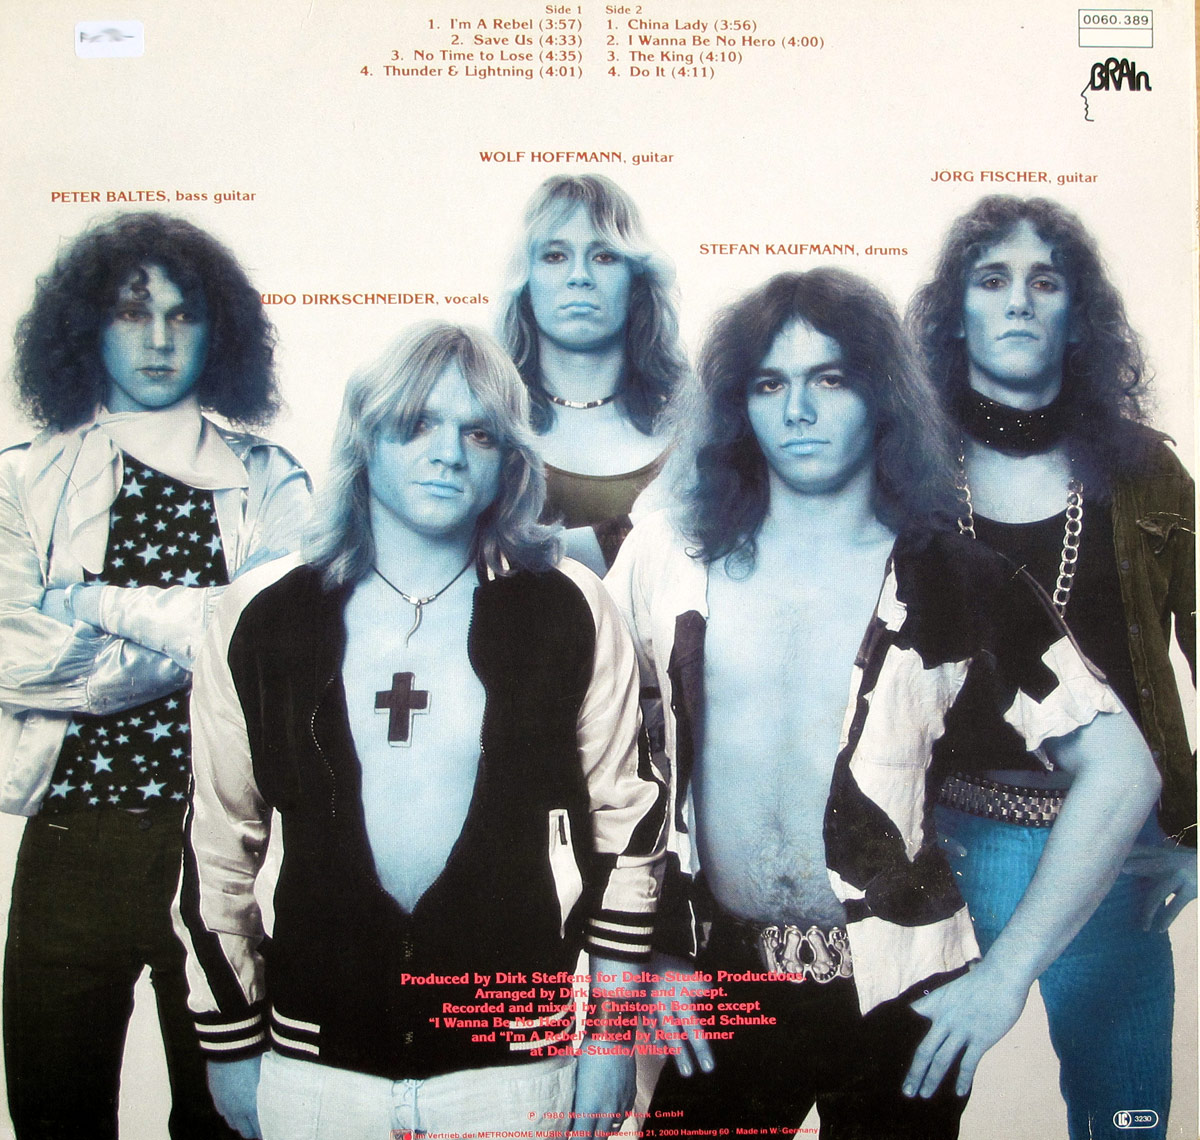 Photo of the Accept band on the album Back cover ACCEPT - I'm A Rebel ( title-less )